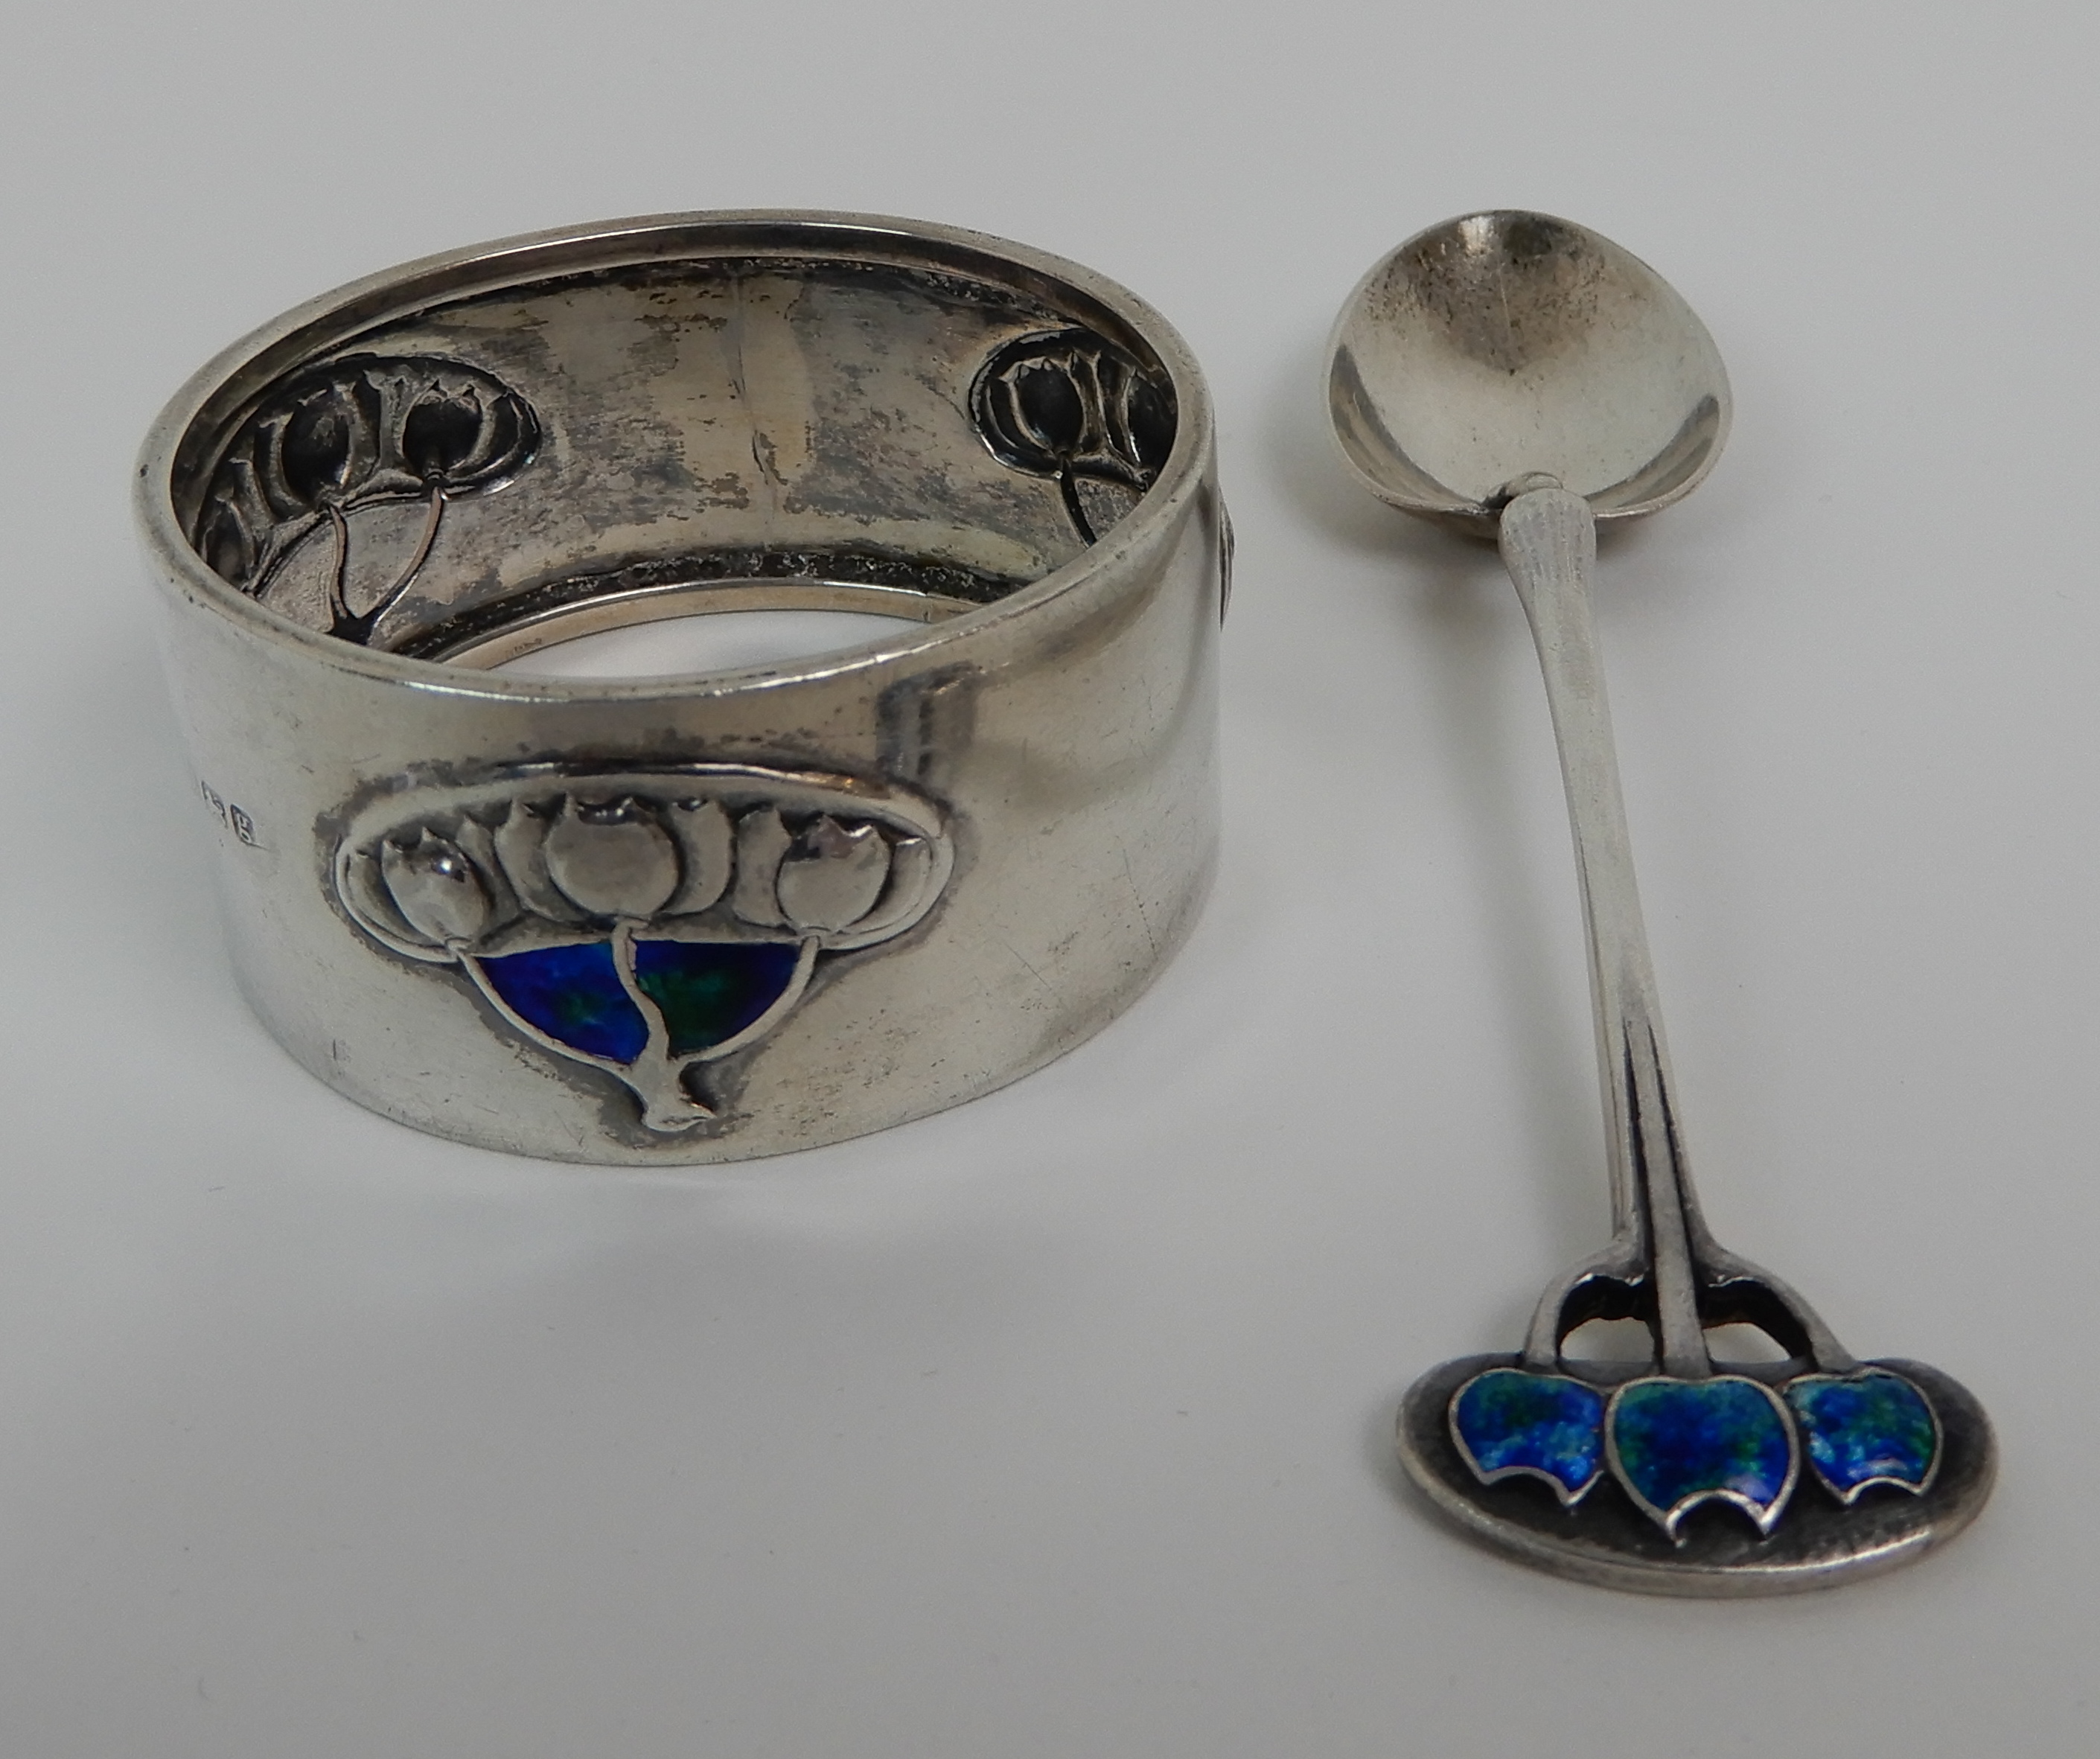 Lot 159 - A CASED TWO PIECE ART NOUVEAU SILVER CHRISTENING SET by Liberty & Company, Birmingham 1906 and